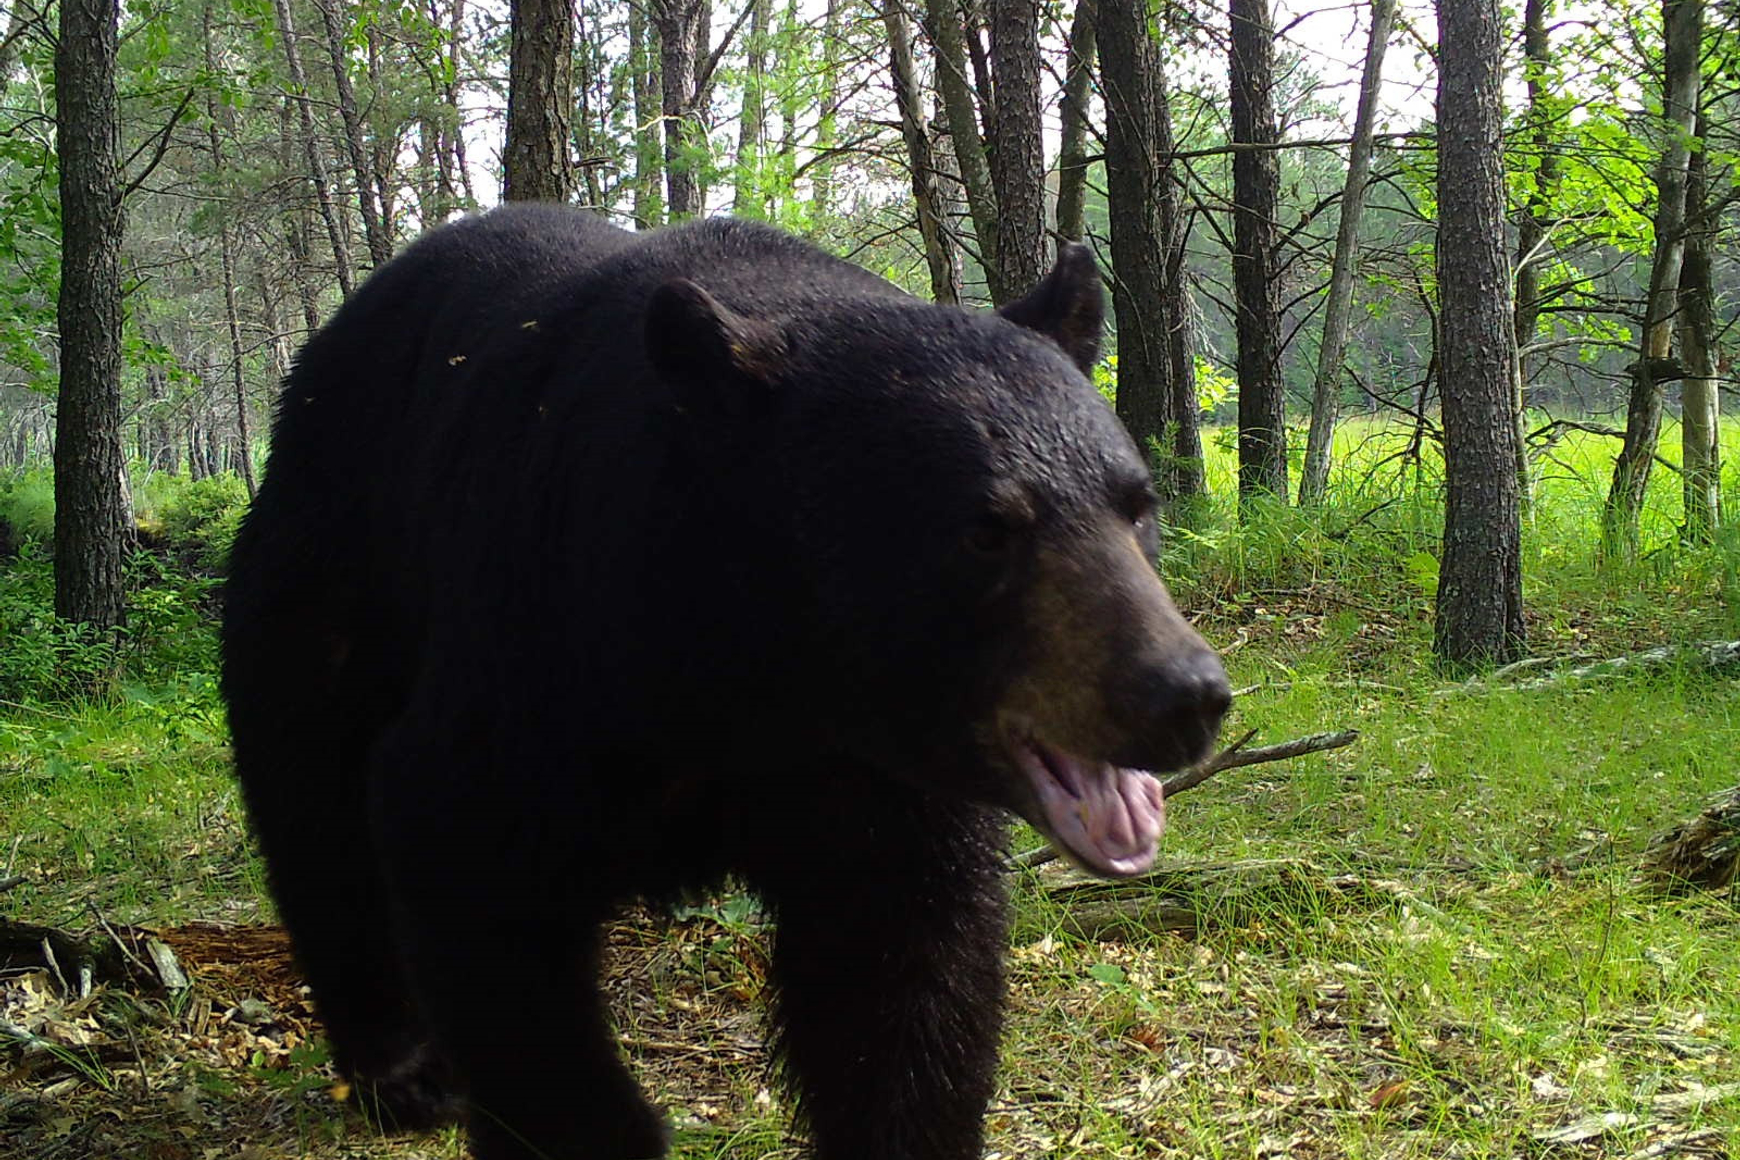 Closeup of big black bear walking in forest